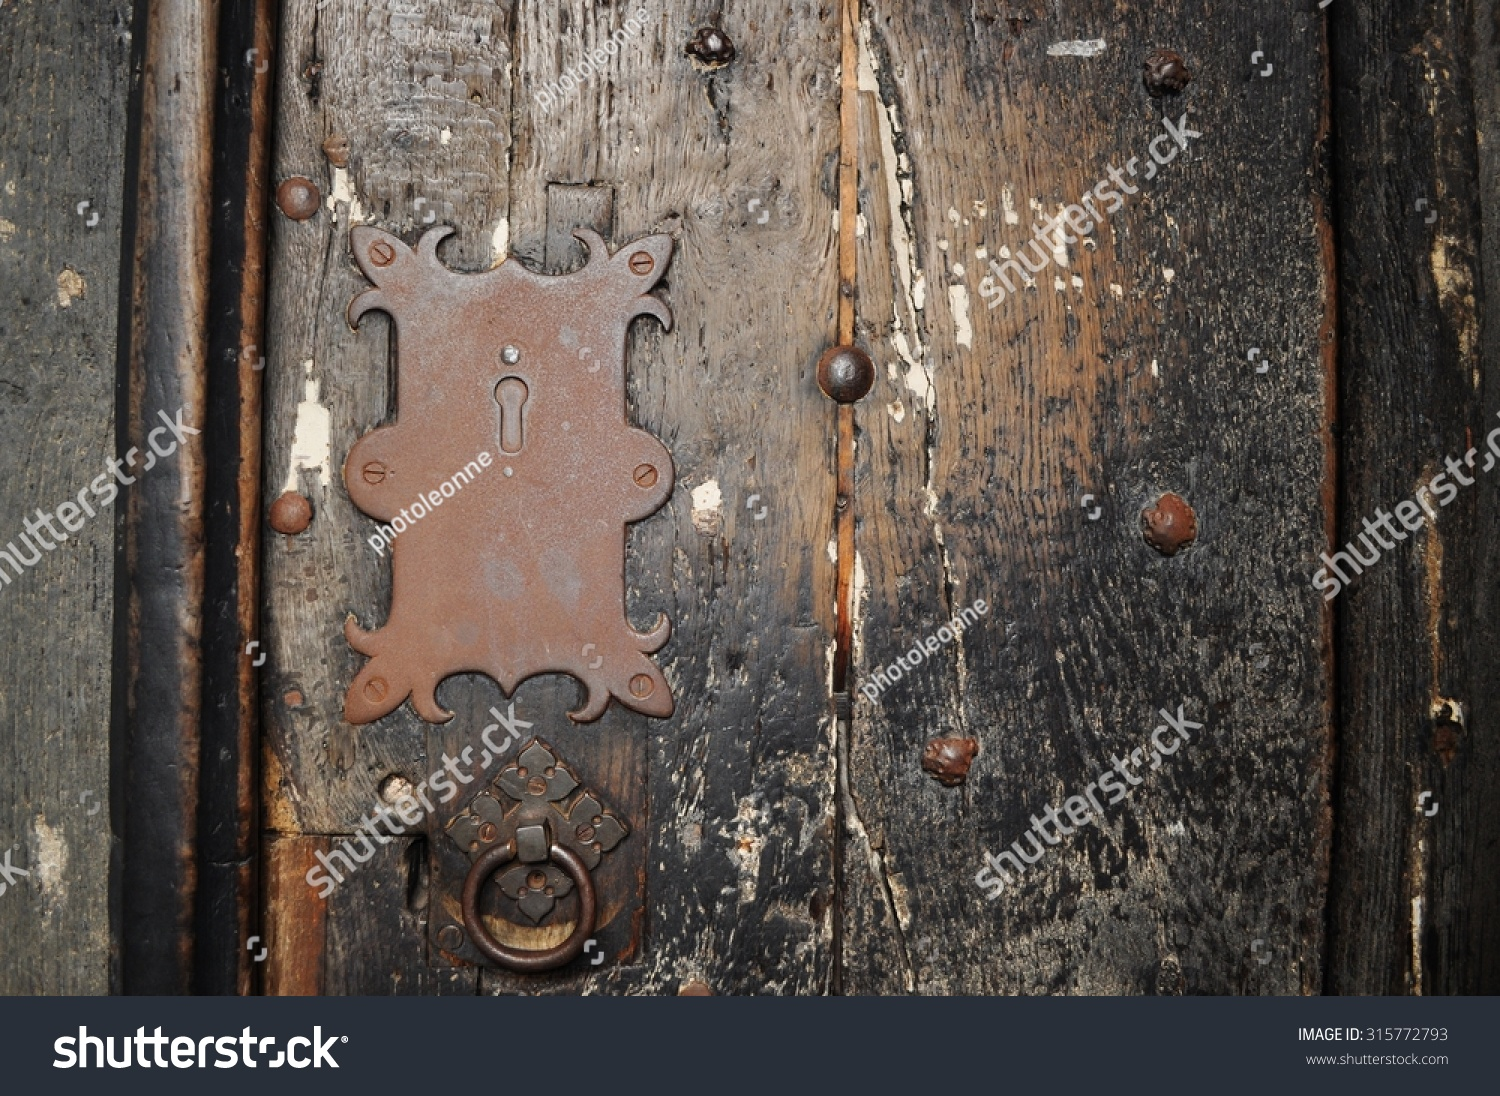 old spooky door gothic entrance Chester cathedral & Old Spooky Door Gothic Entrance Chester Stock Photo 315772793 ... pezcame.com